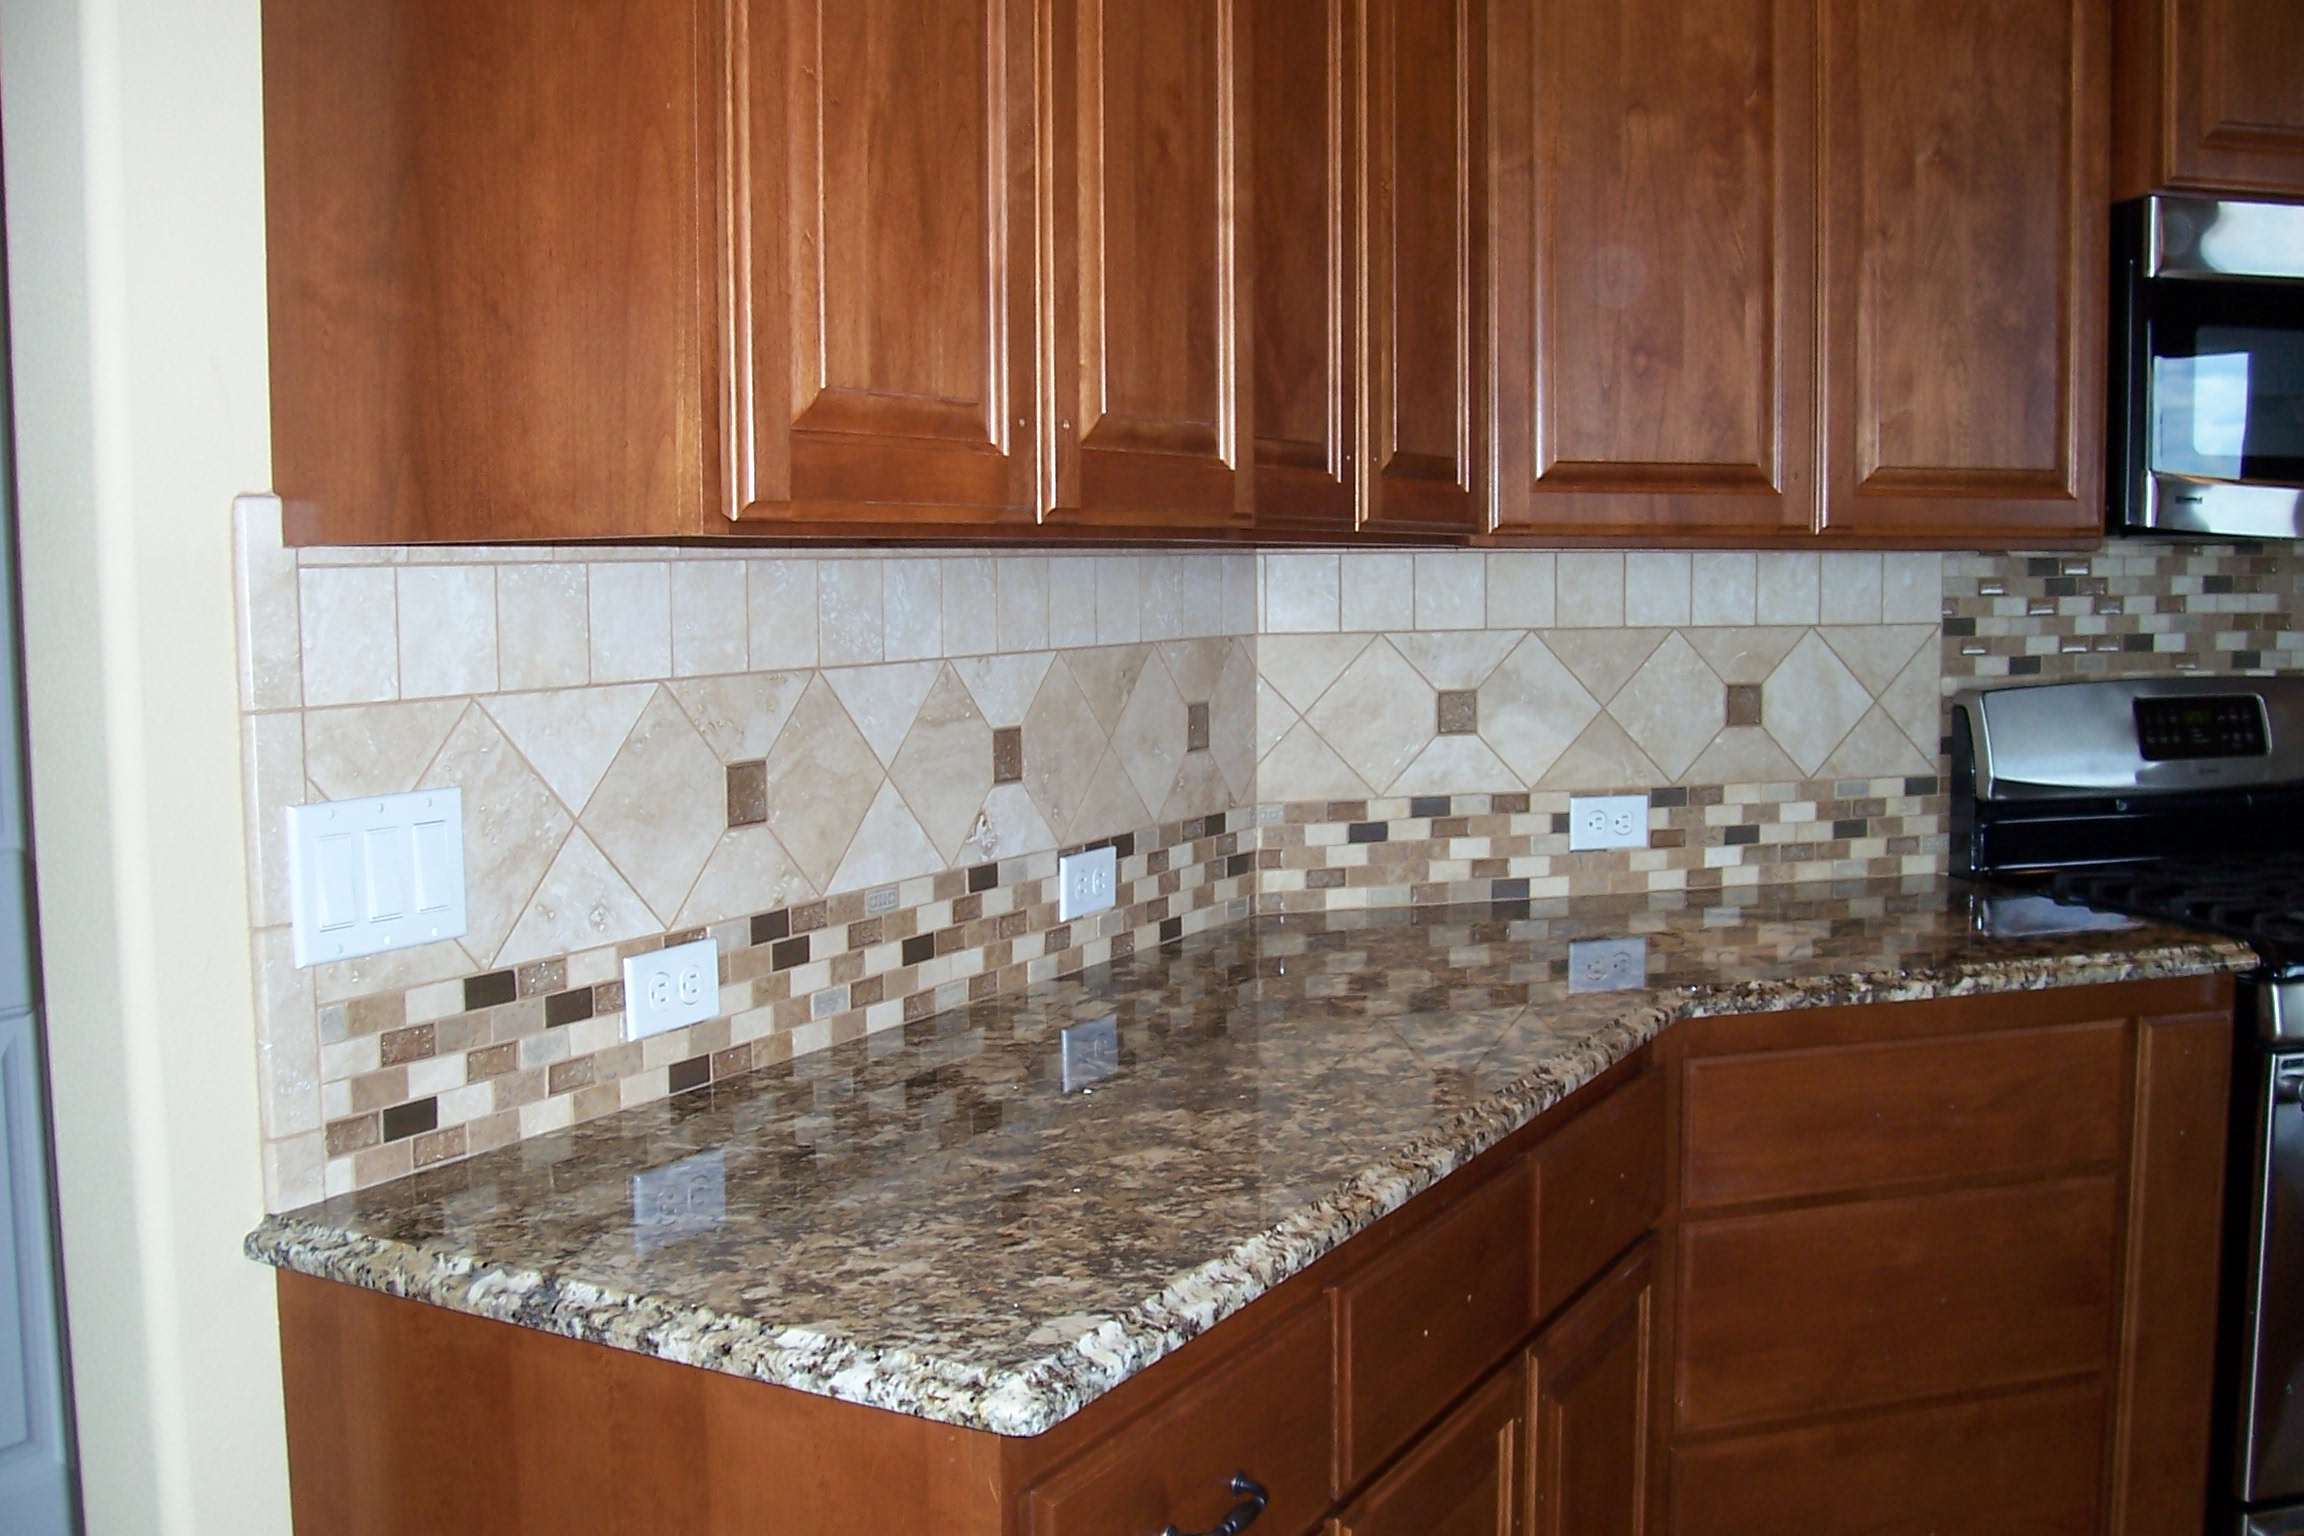 301 moved permanently - Simple kitchen tiles ...